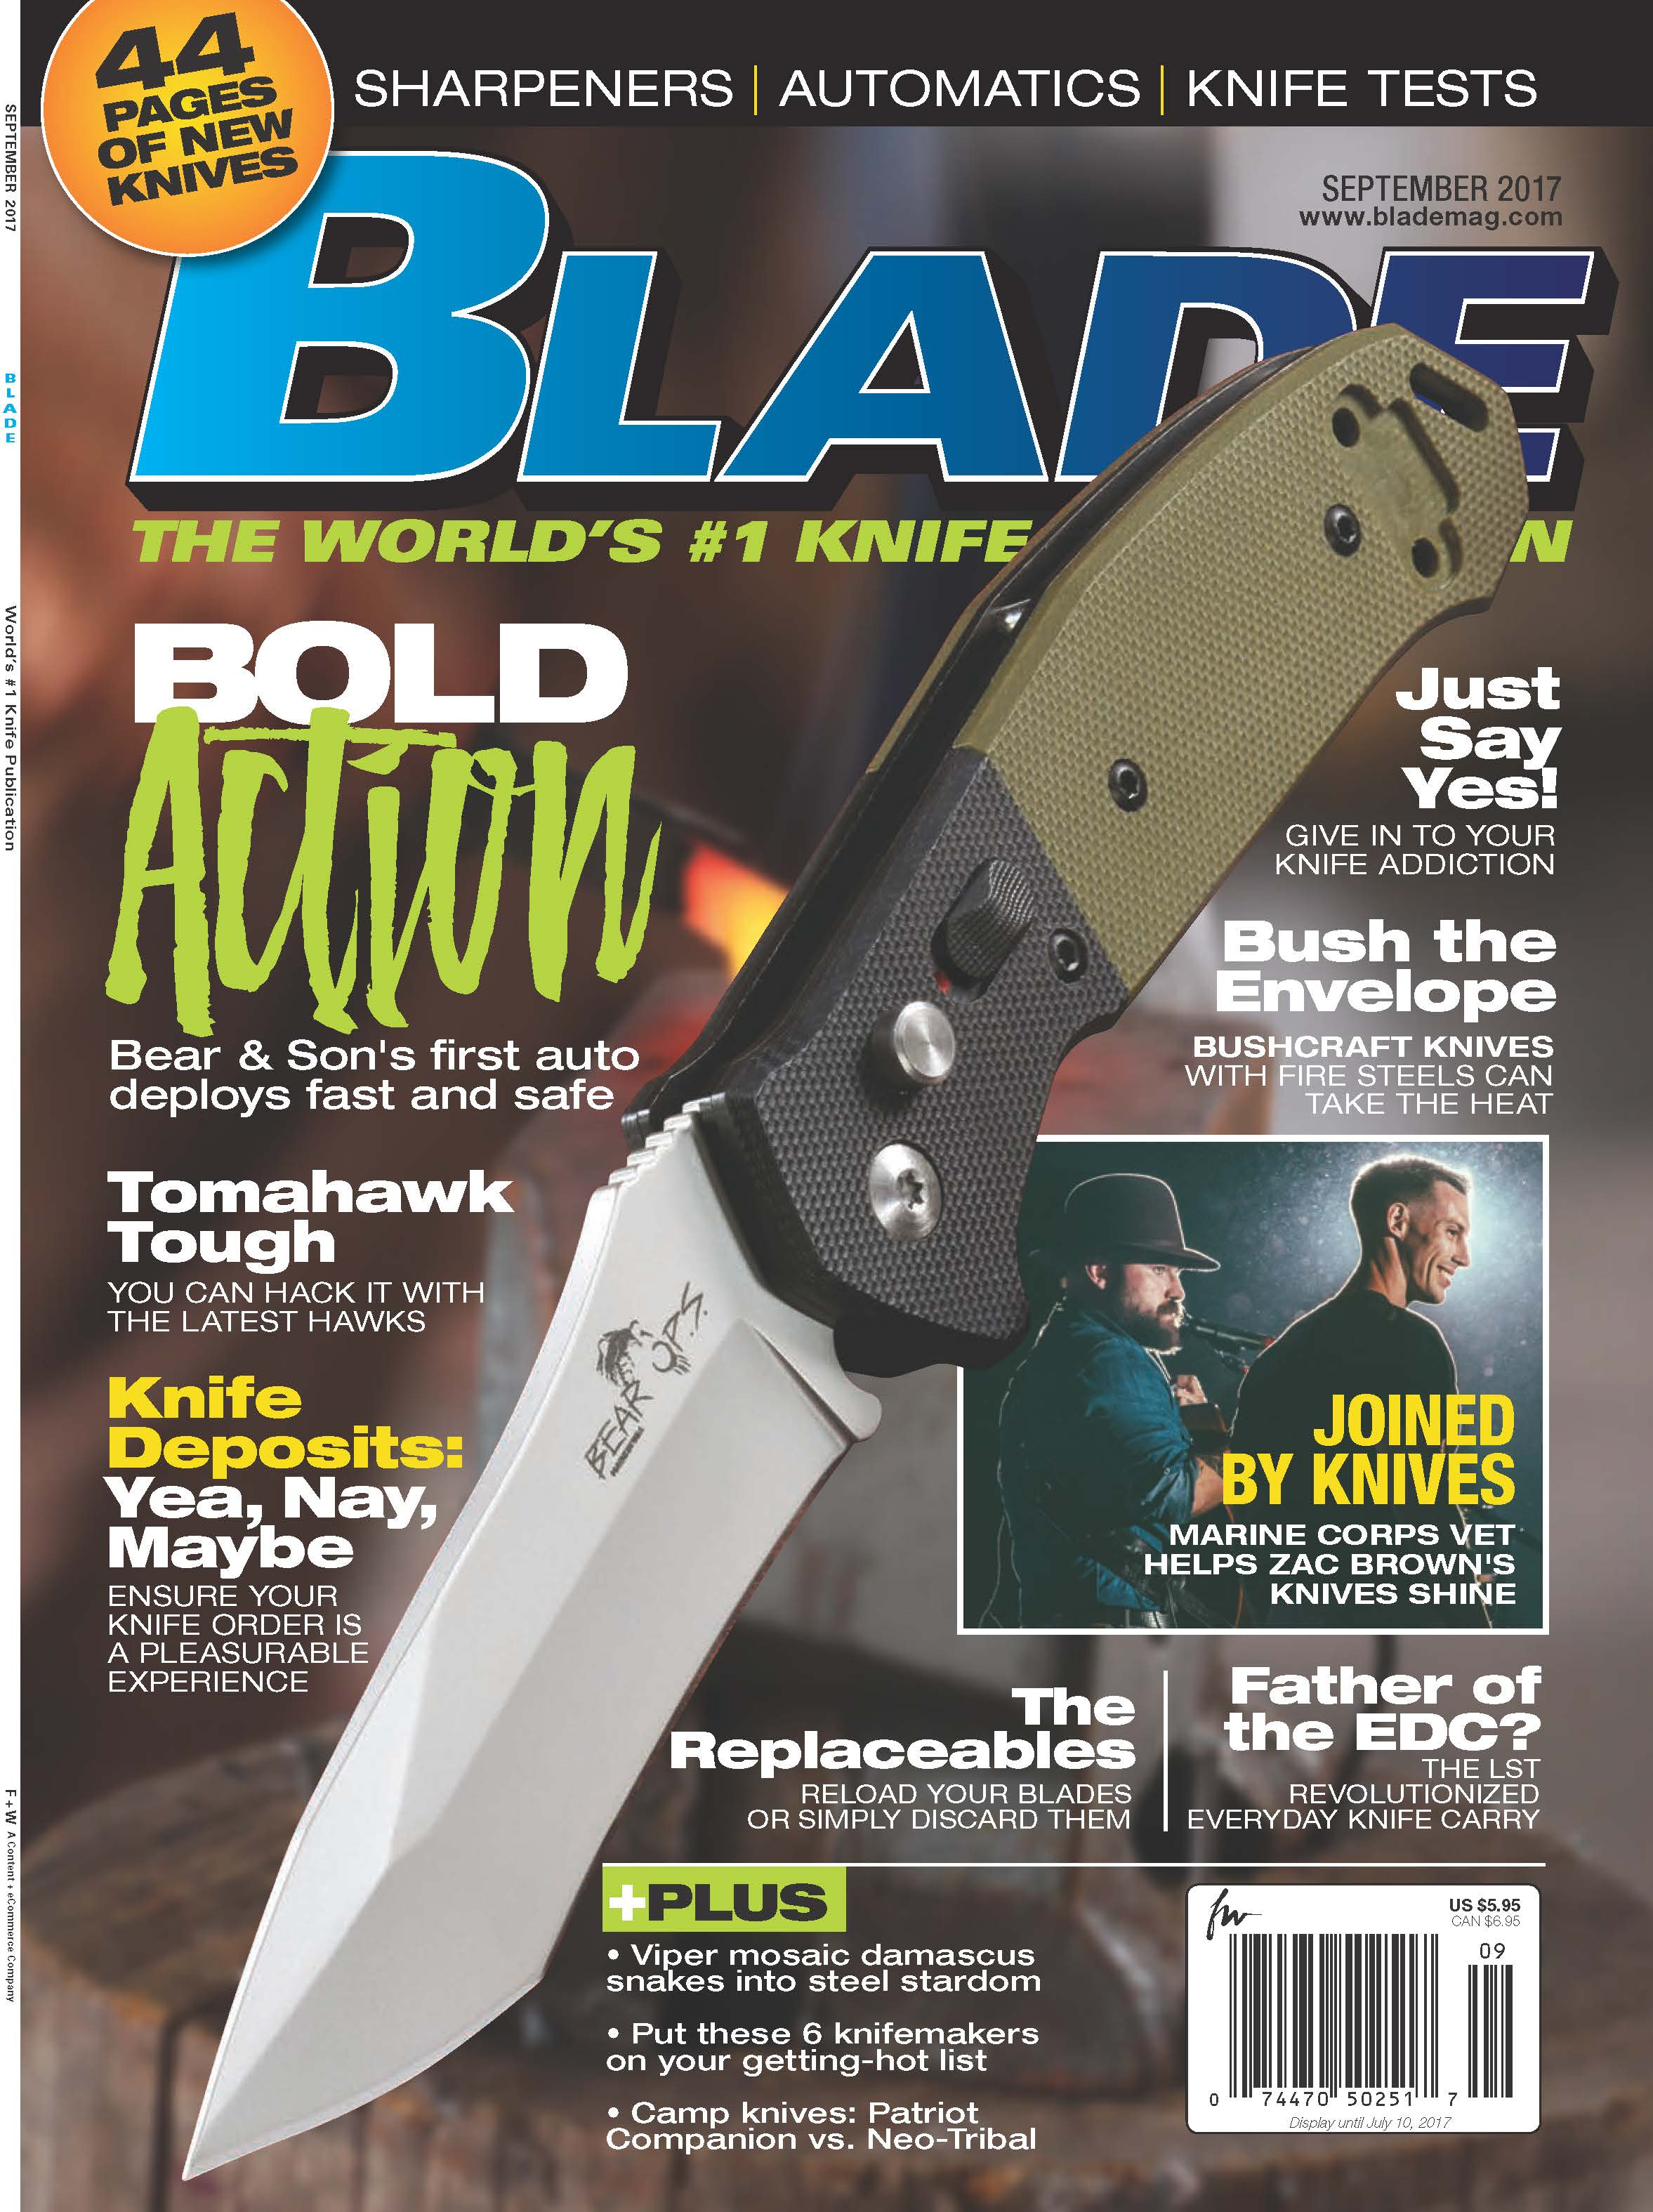 BLADE and Bold Action